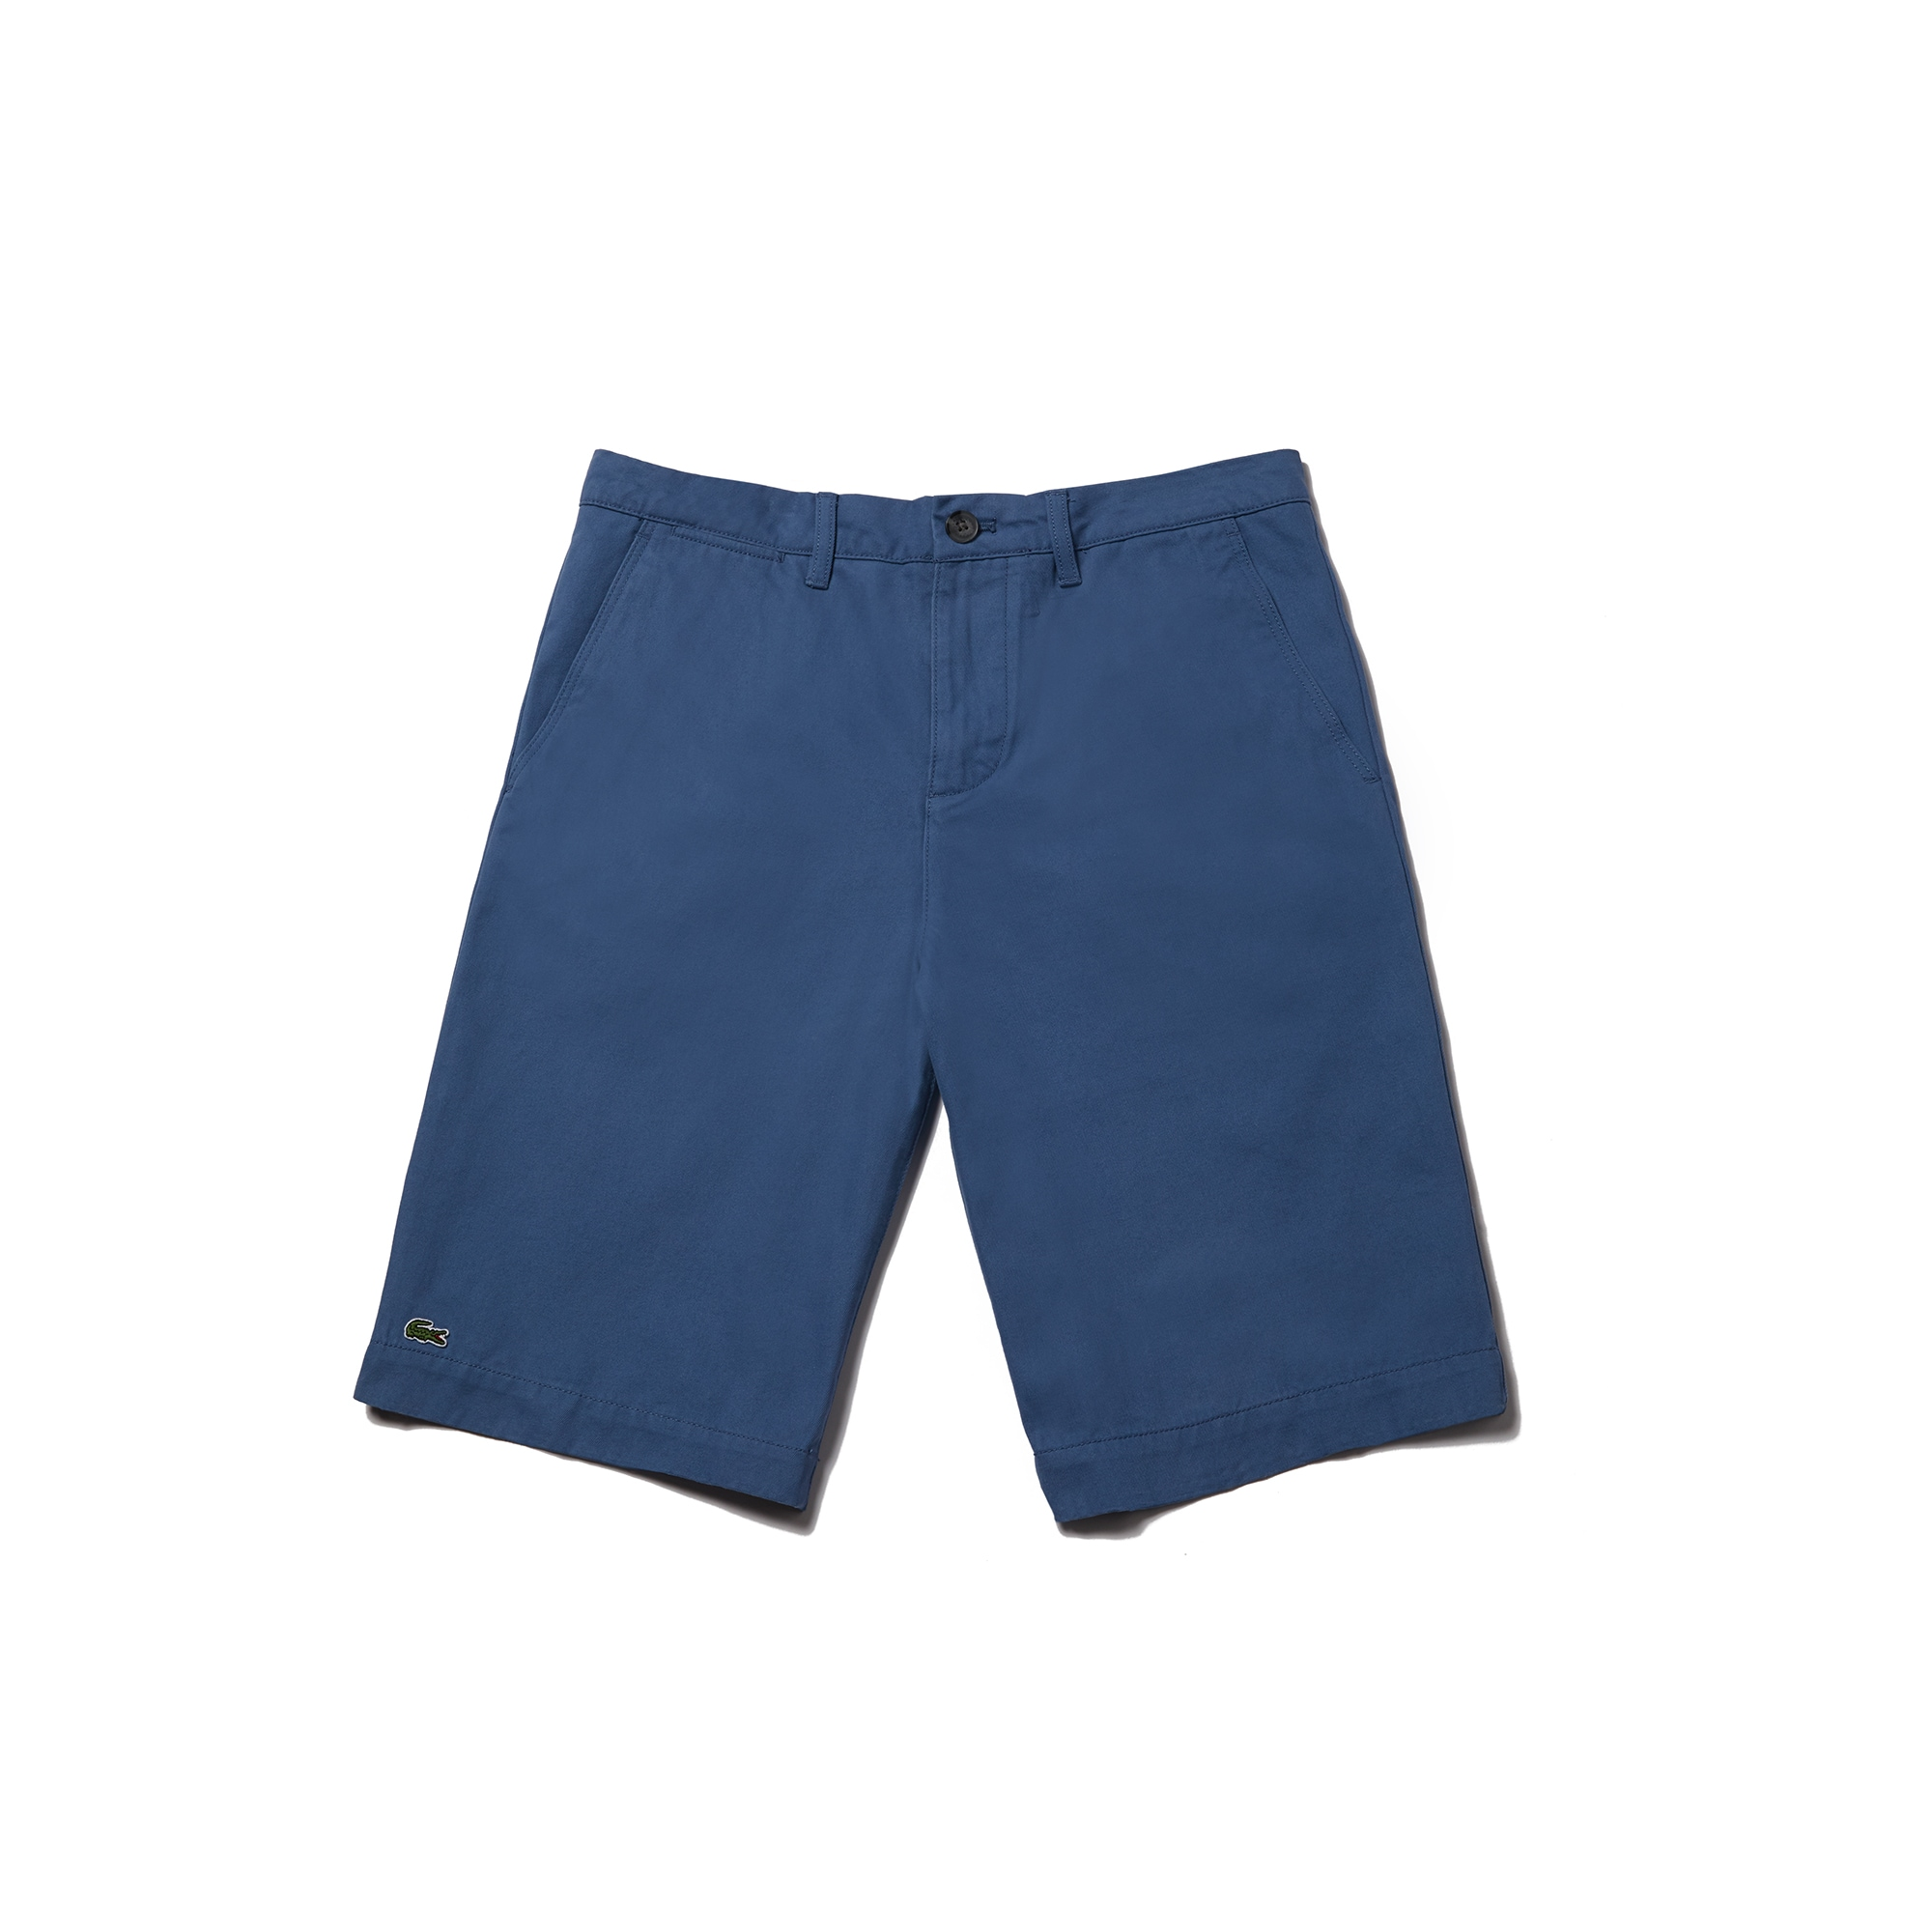 라코스테 반바지 Lacoste Mens Regular Fit Bermuda Shorts,rusty blue